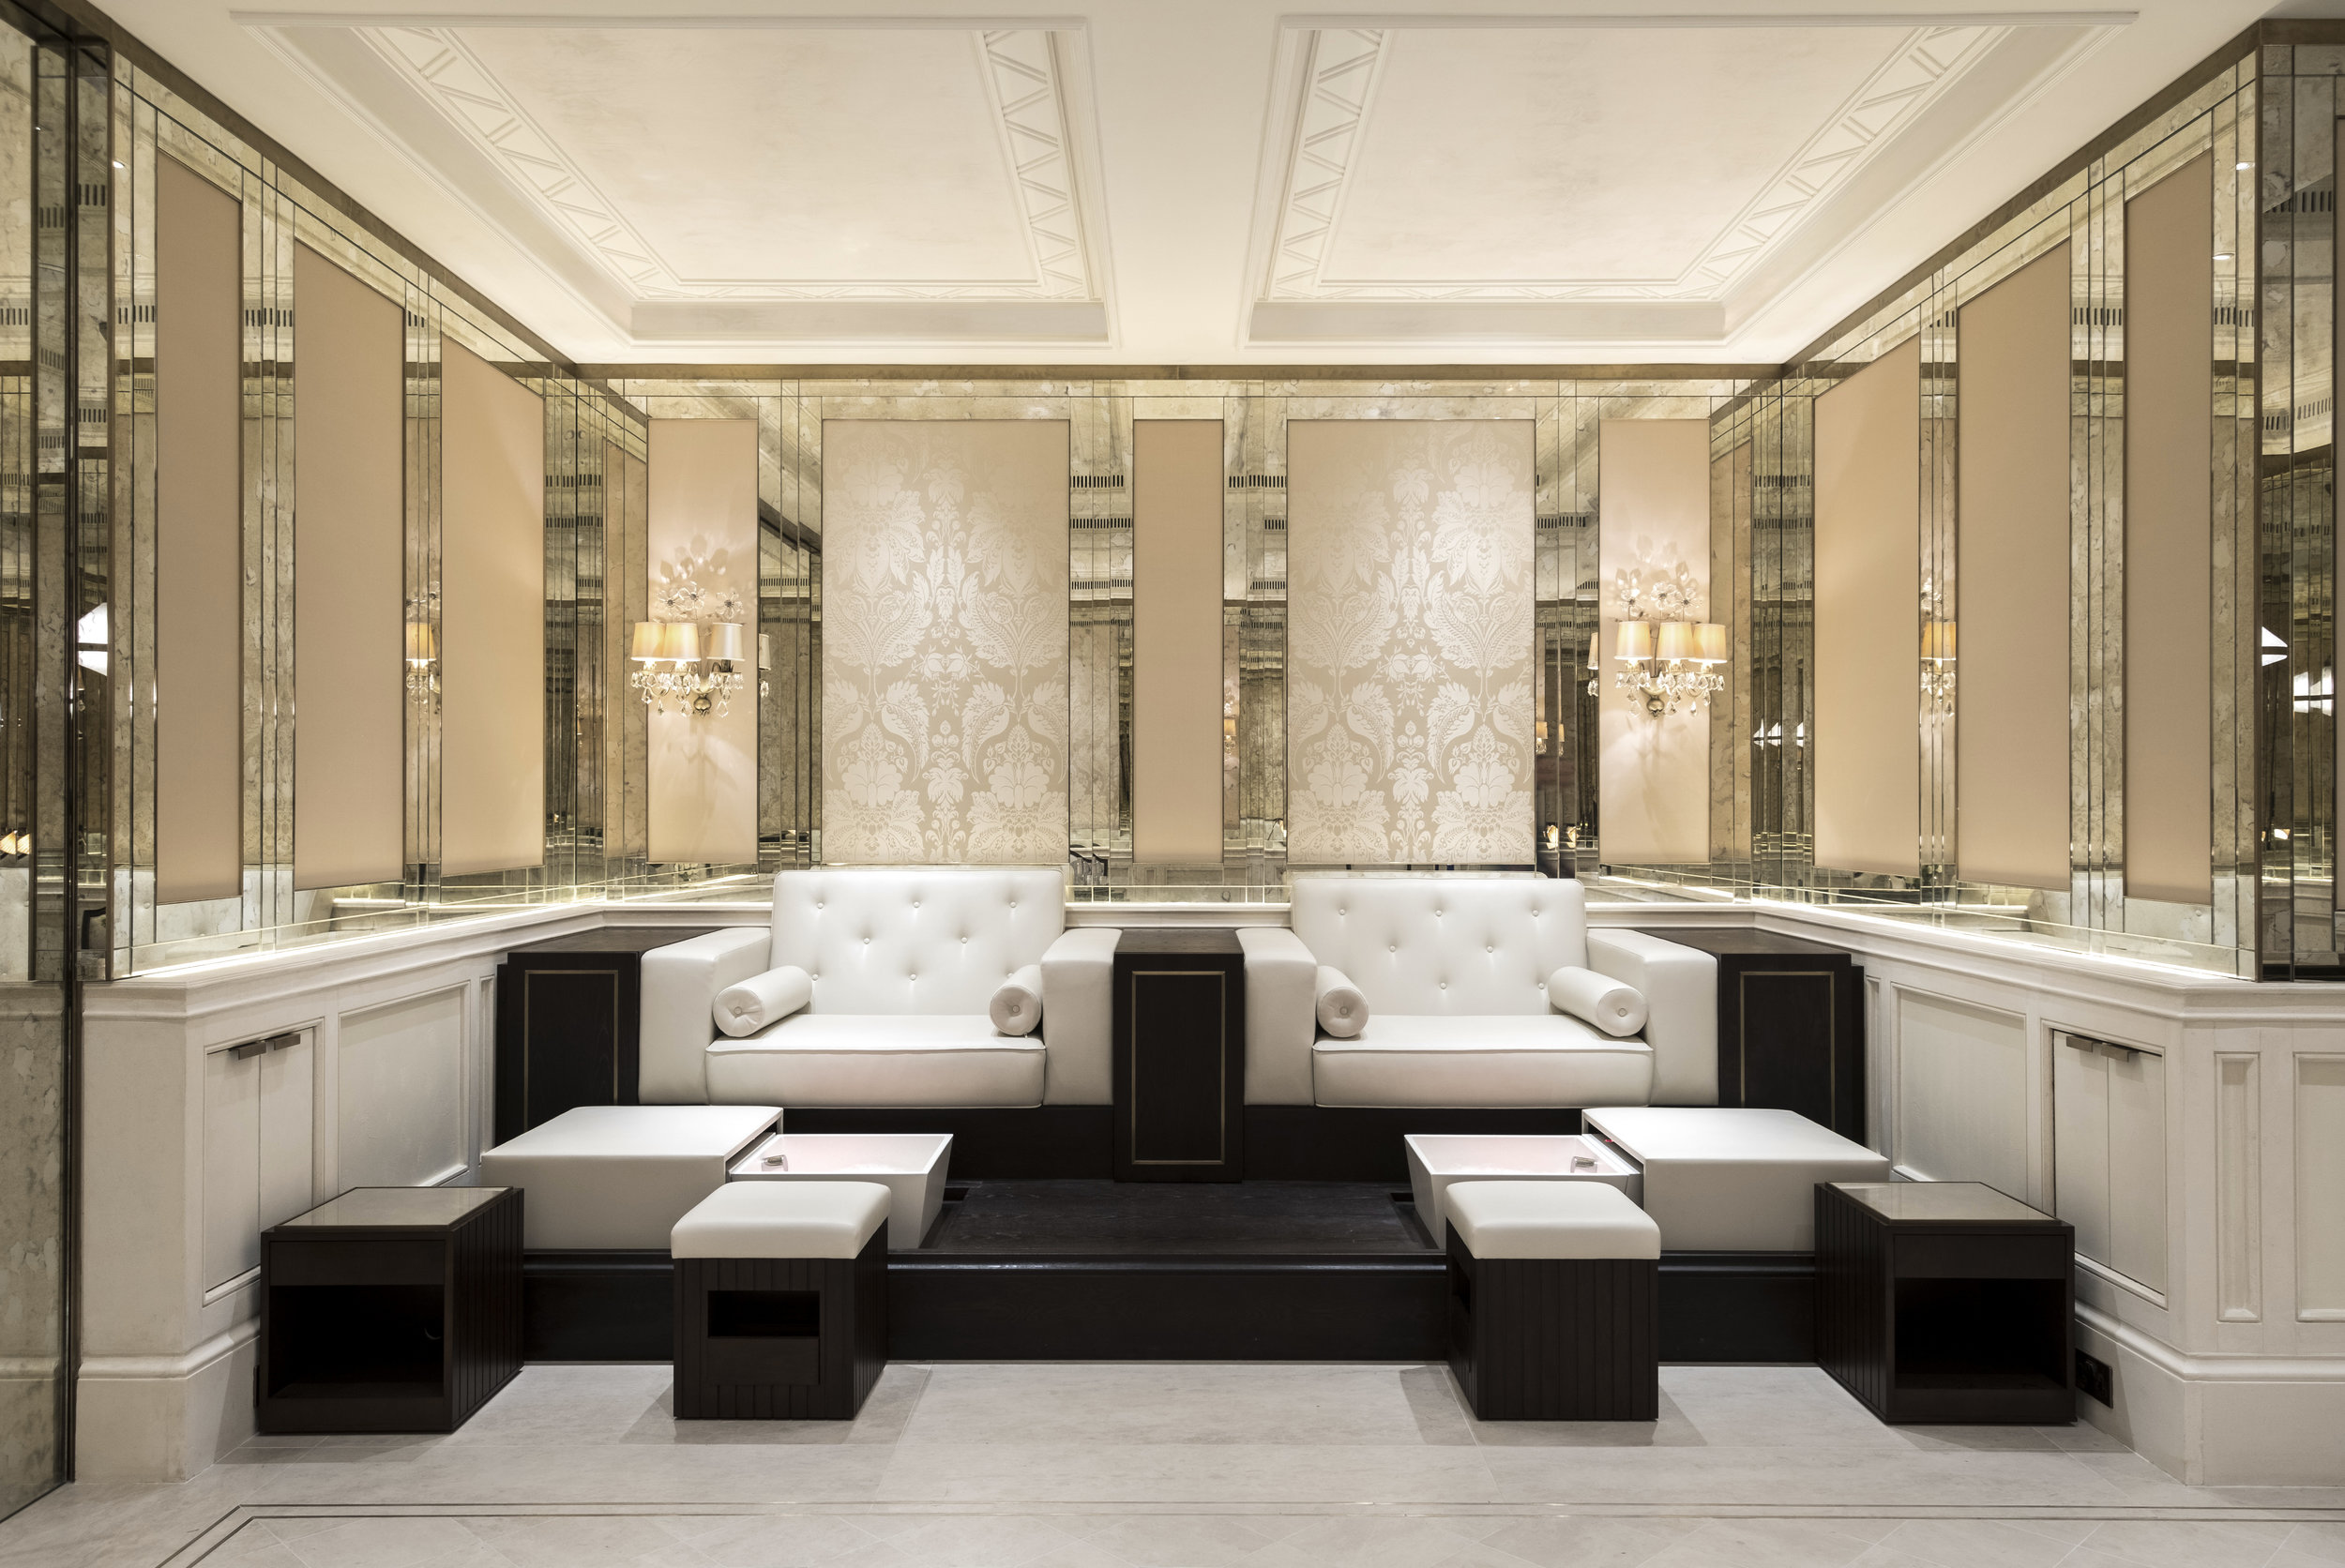 Lanesborough Spa